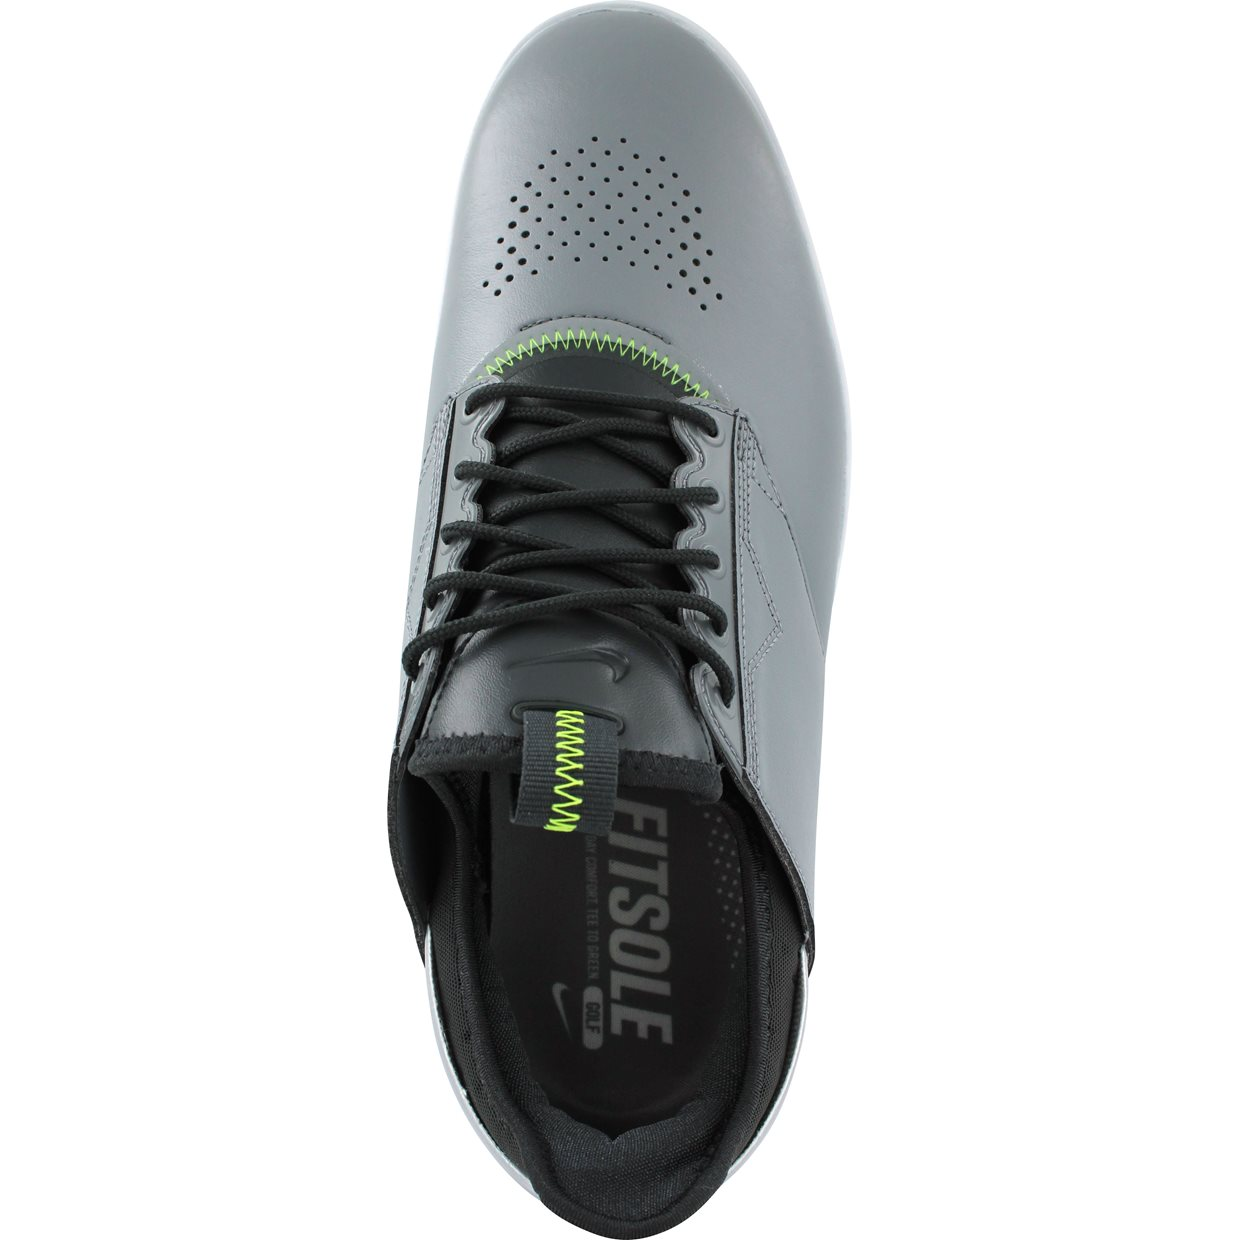 10a8e78c5de9 Nike Air Zoom Direct Golf Shoe in Cool Grey Black Wolf Anthracite